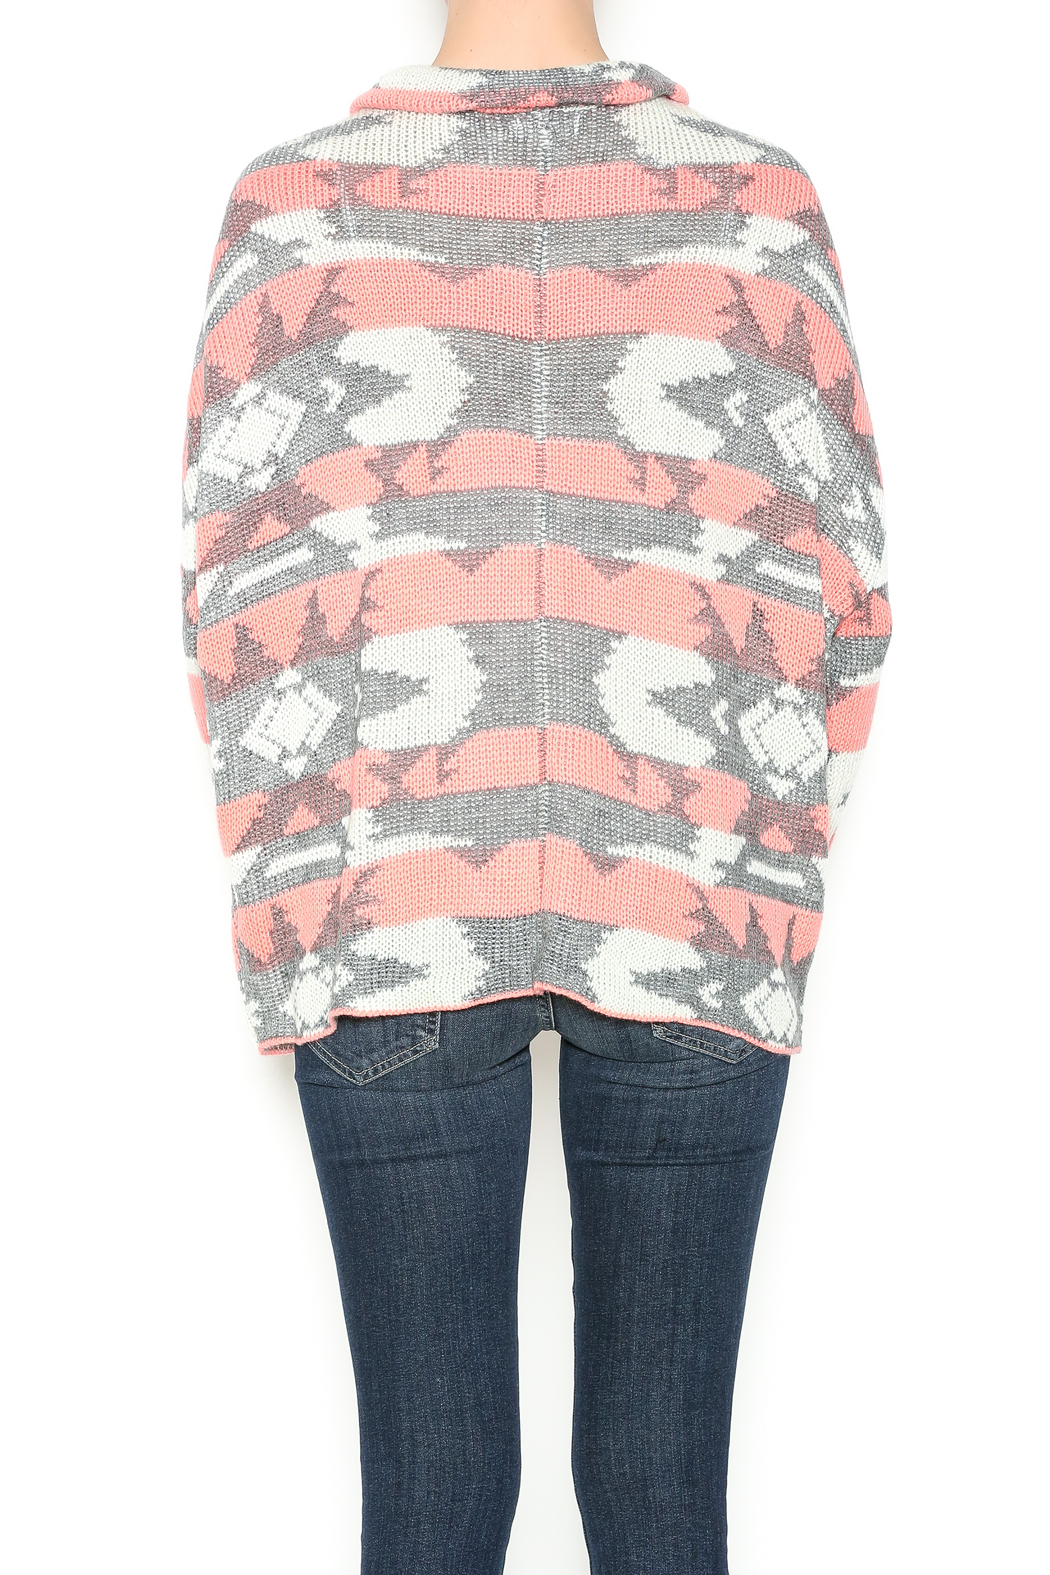 Blu Pepper Coral And Grey Sweater - Back Cropped Image